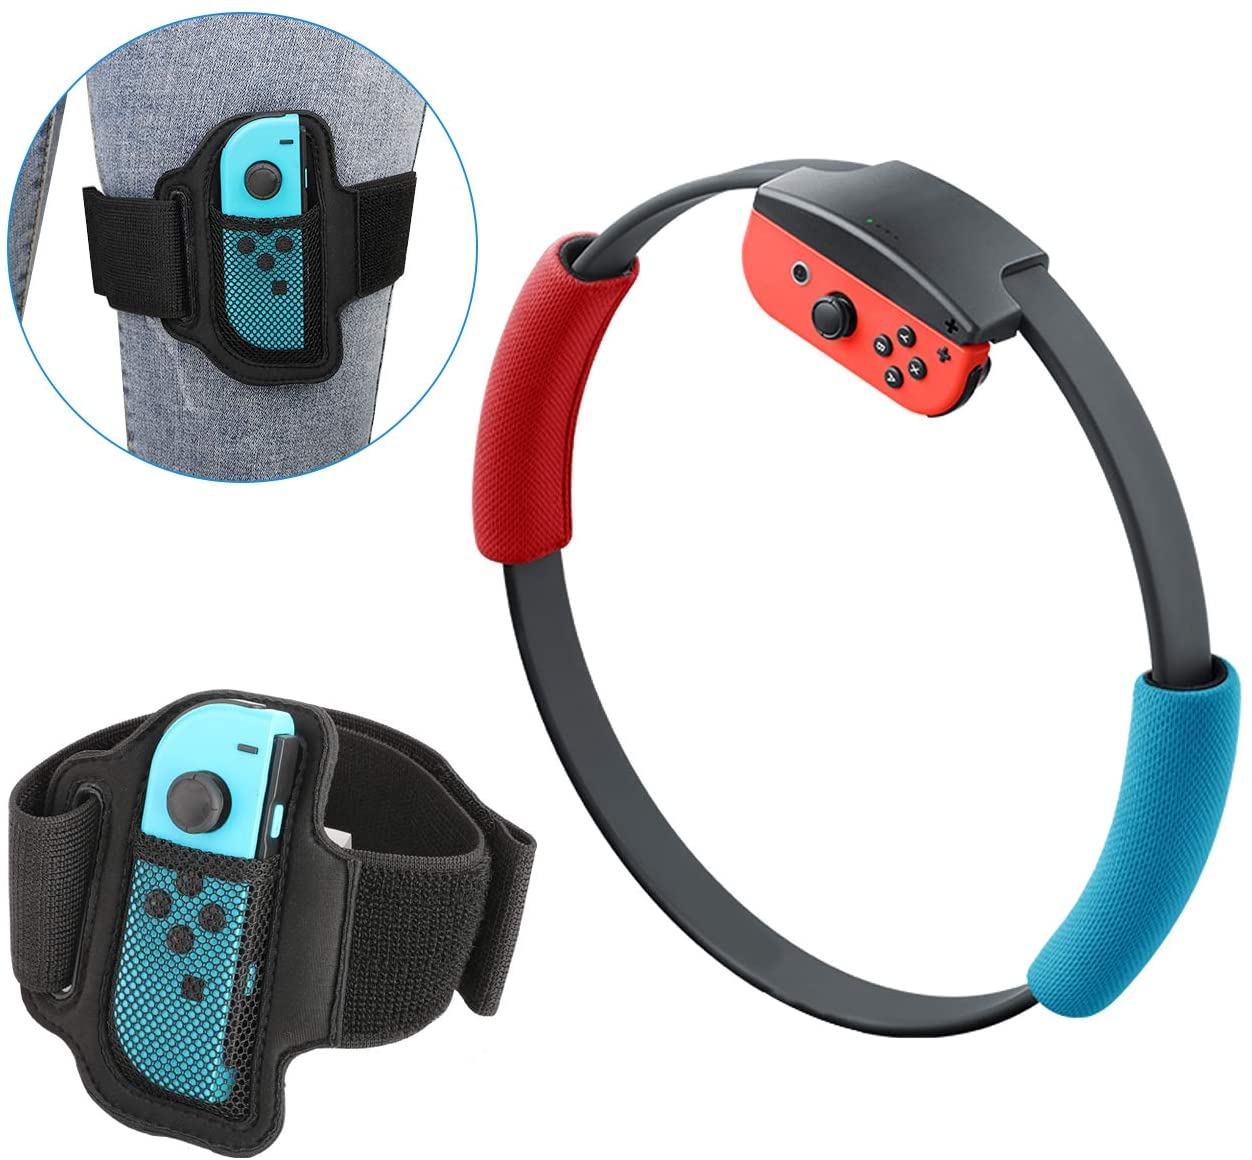 MoKo Accessories Kit for Ring Fit Adventure, 1 Leg Strap and 2 Ring-Con Grips for Nintendo Switch Ring Fit Adventure